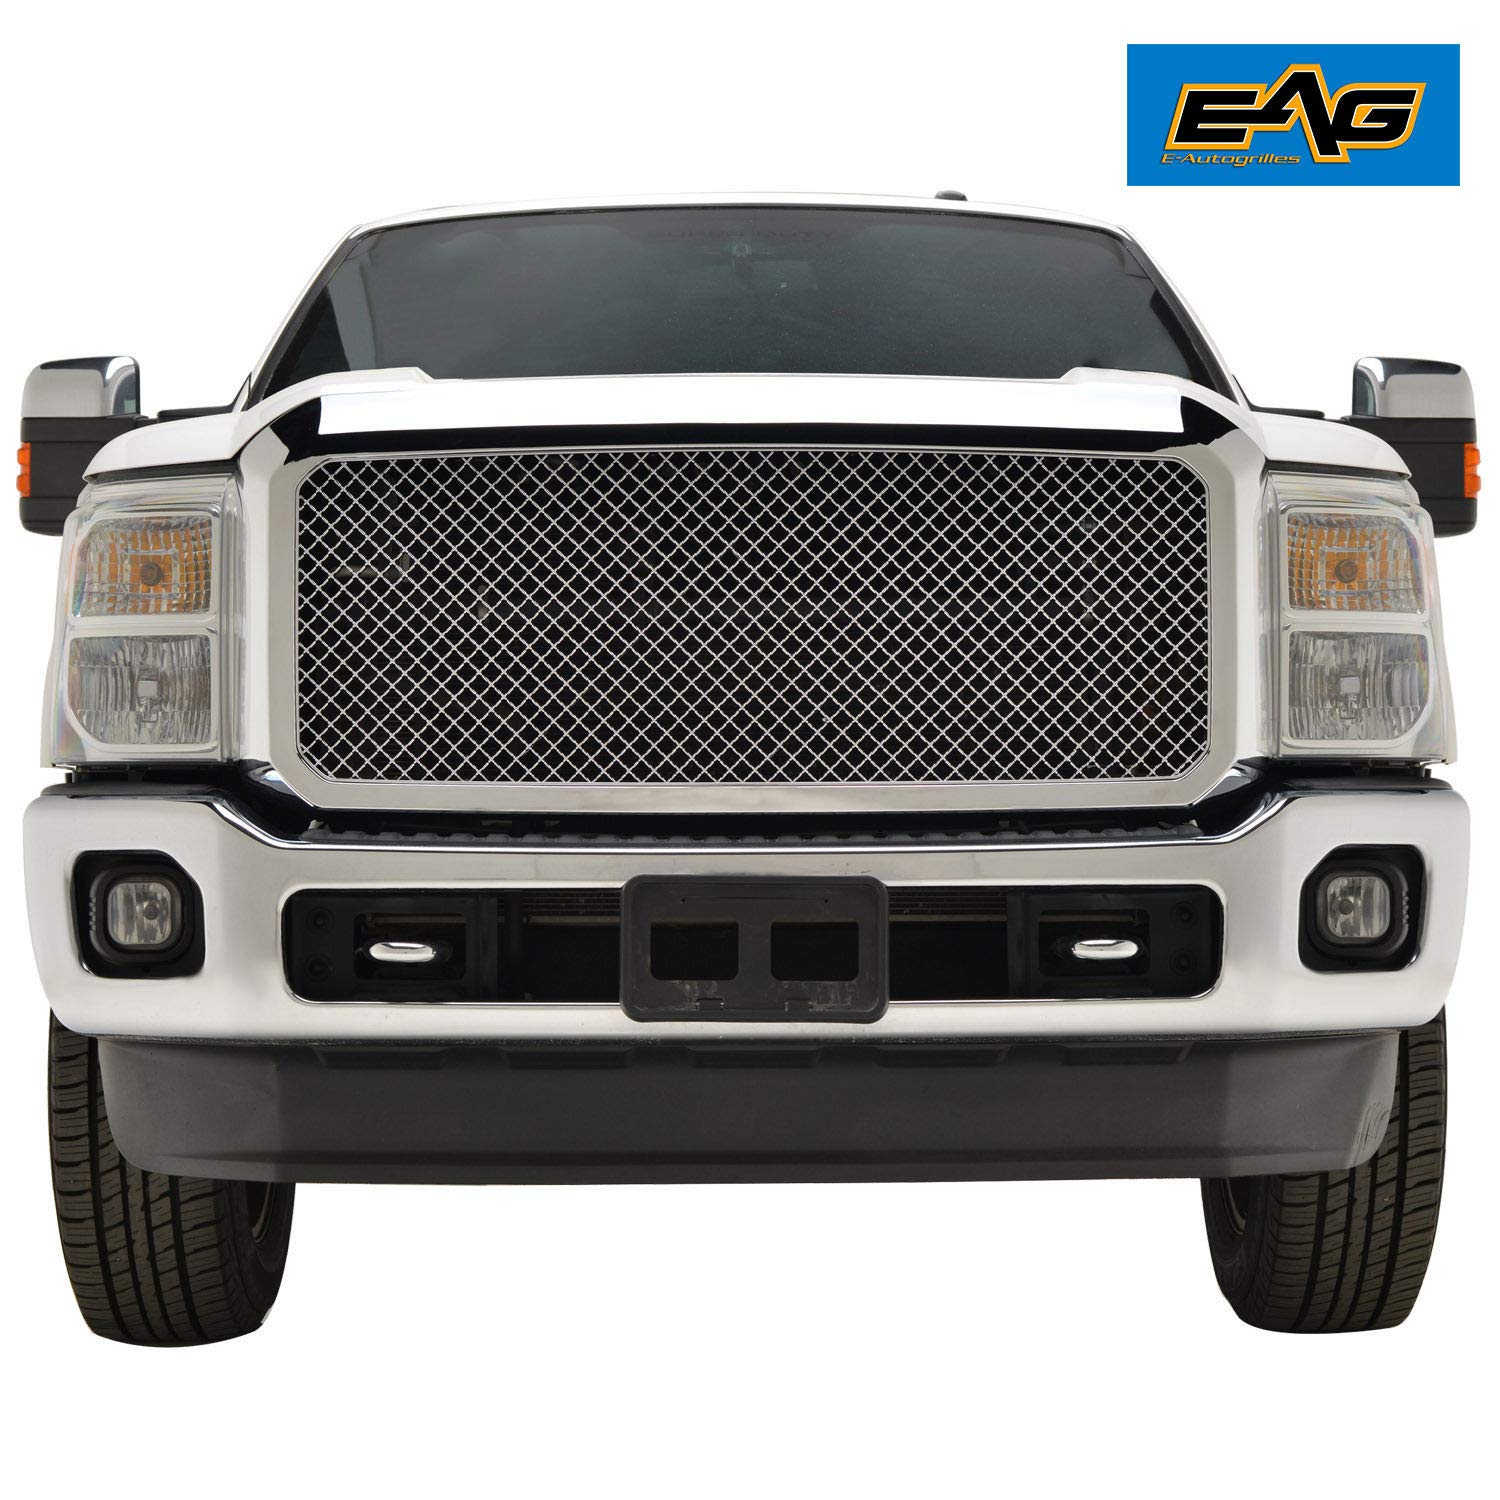 EAG Mesh Front Grille ABS Replacement Upper Grill with Shell Chrome Fit for 11-16 Ford F250//F350 Super Duty